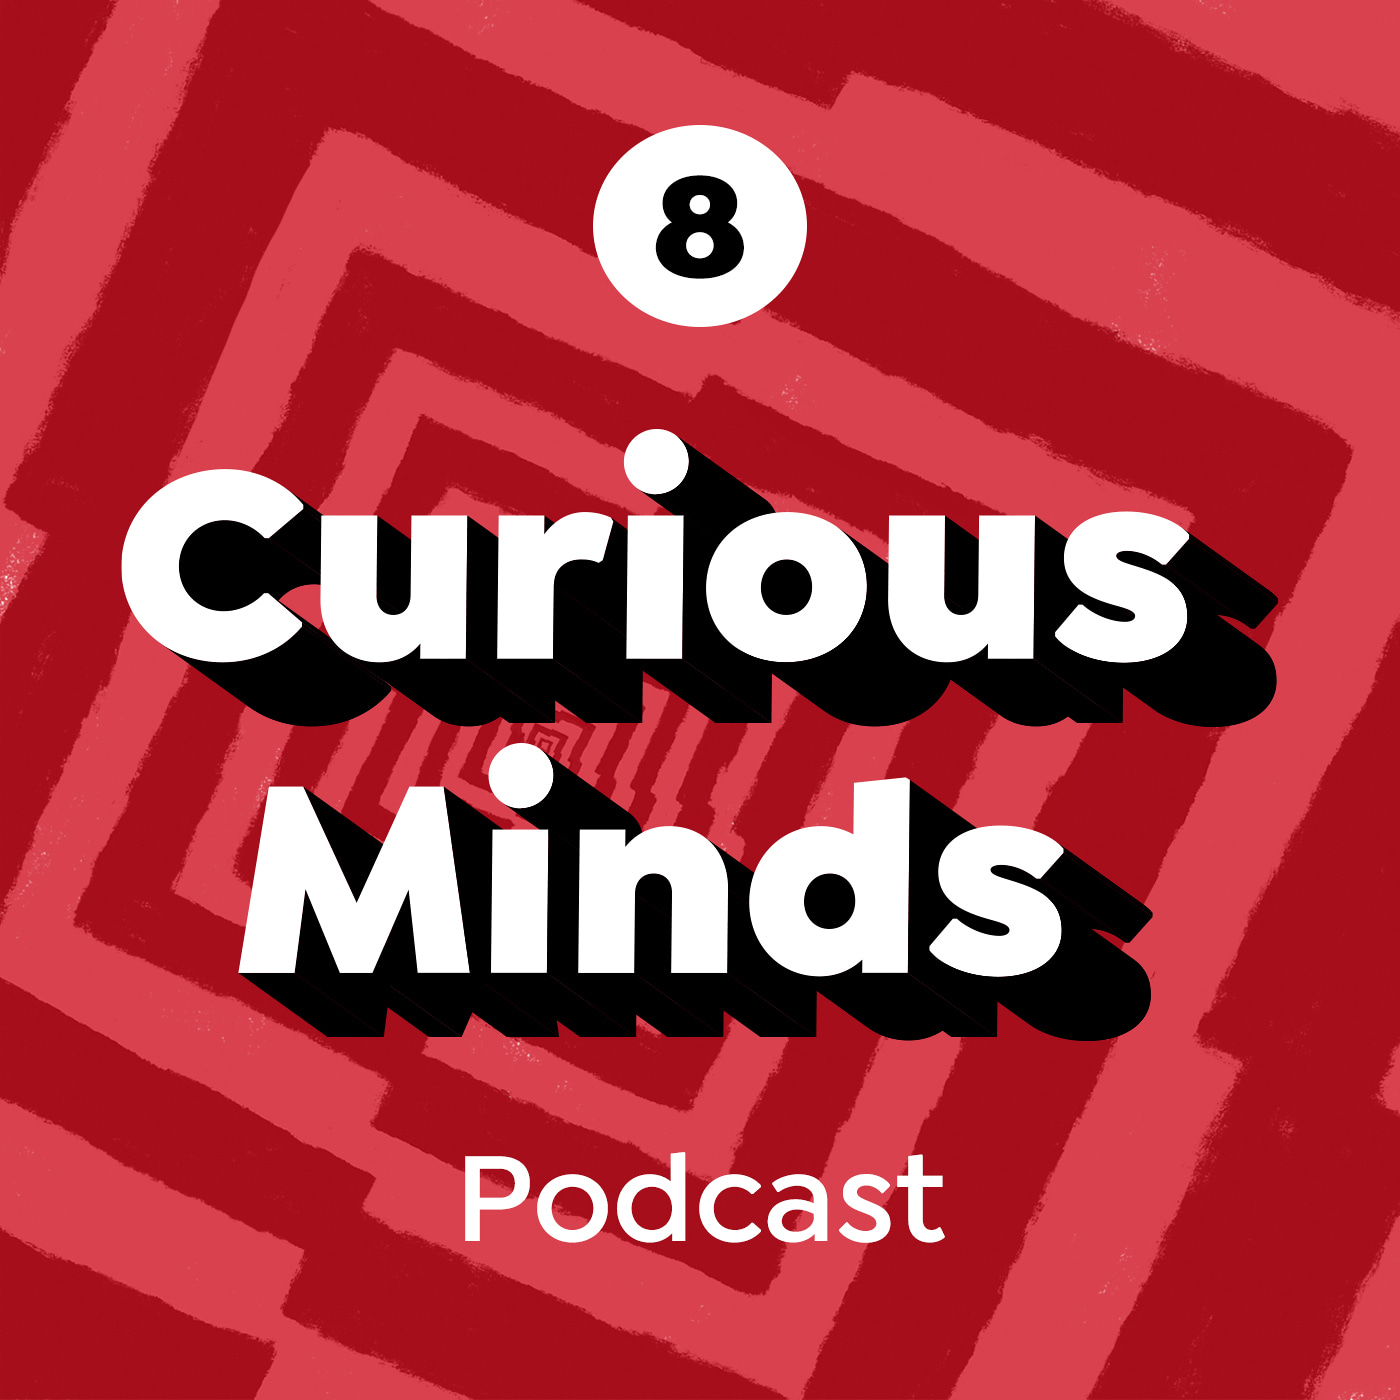 Curious Minds Podcast: What Does It Take For a Movie Poster to Be Iconic?